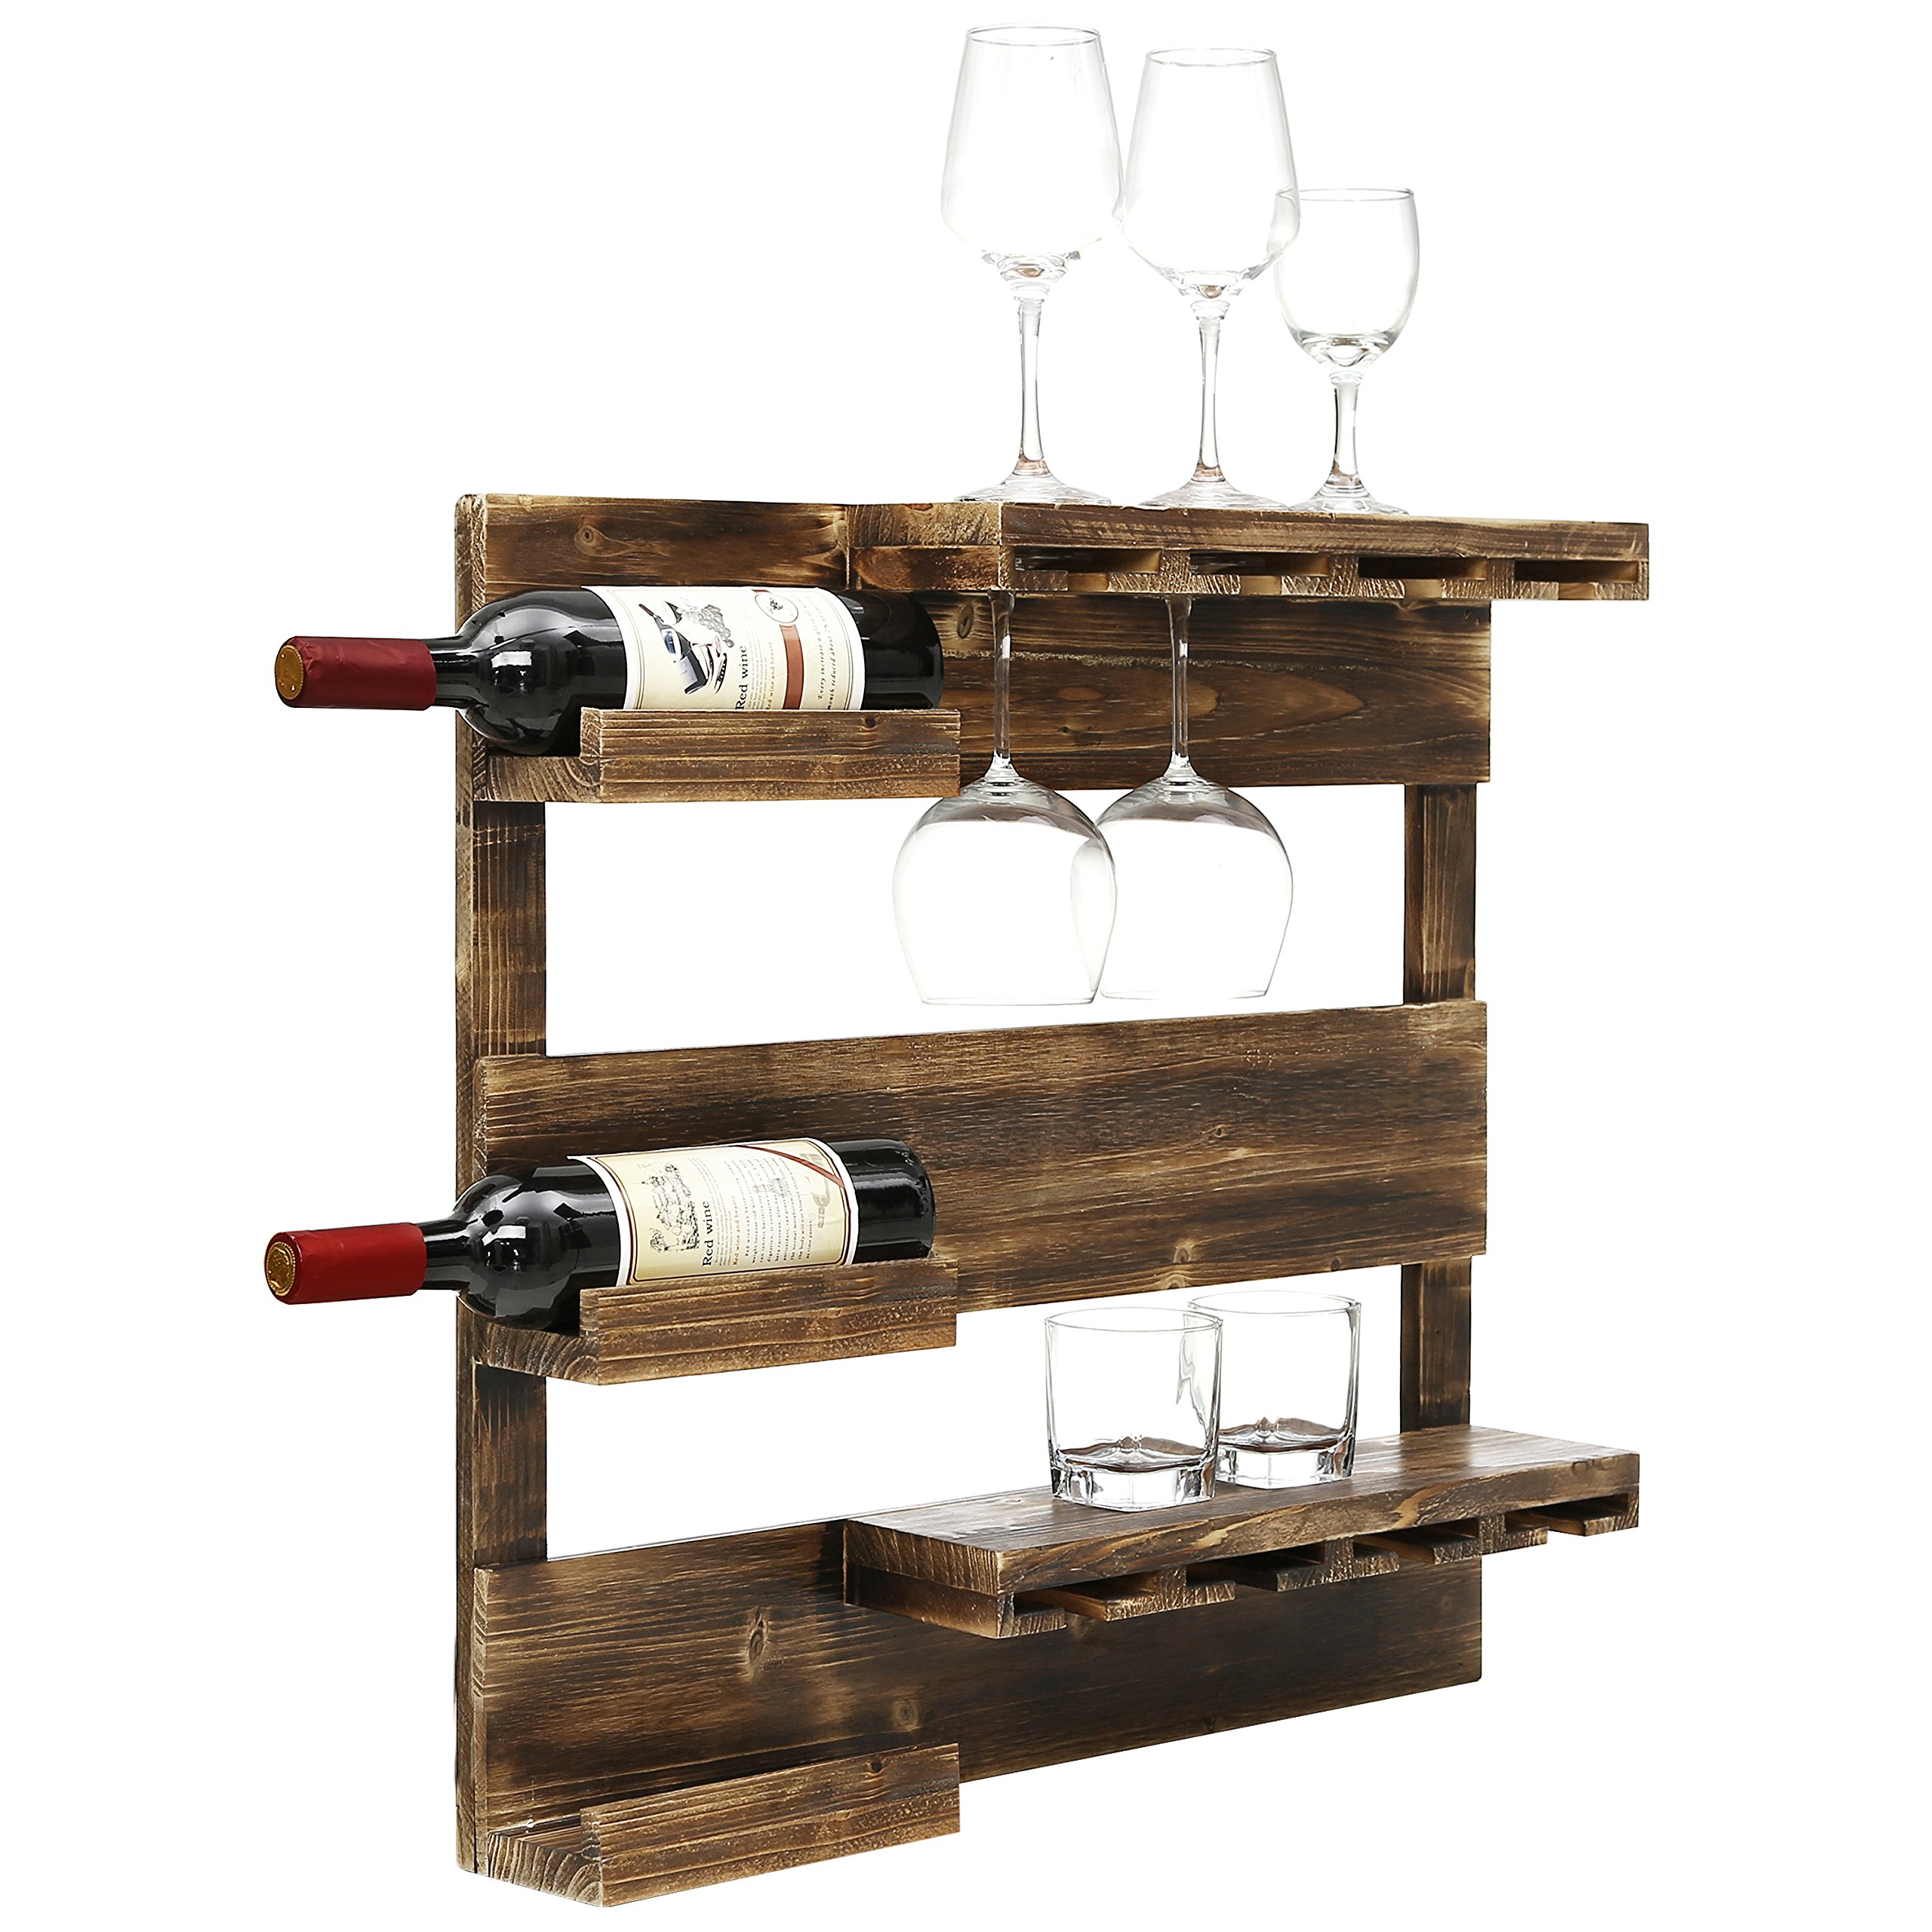 Rustic Burnt Wood Wall Mounted 8 Stemware Glass Holder with Liquor & Wine Bottle Display Shelves